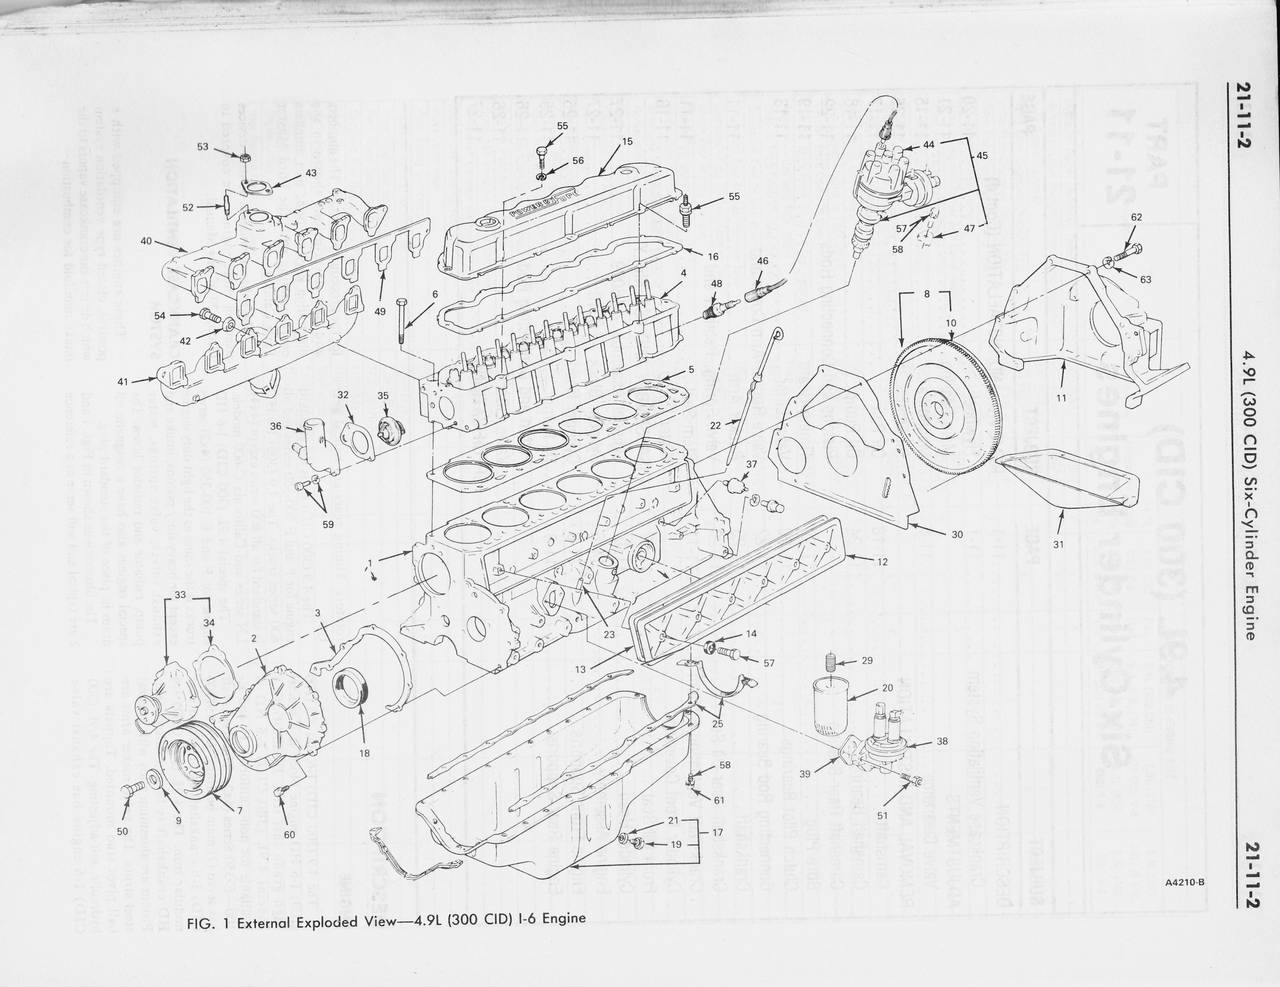 1978 ford shop manual vol 2 - group 21 - gasoline engines